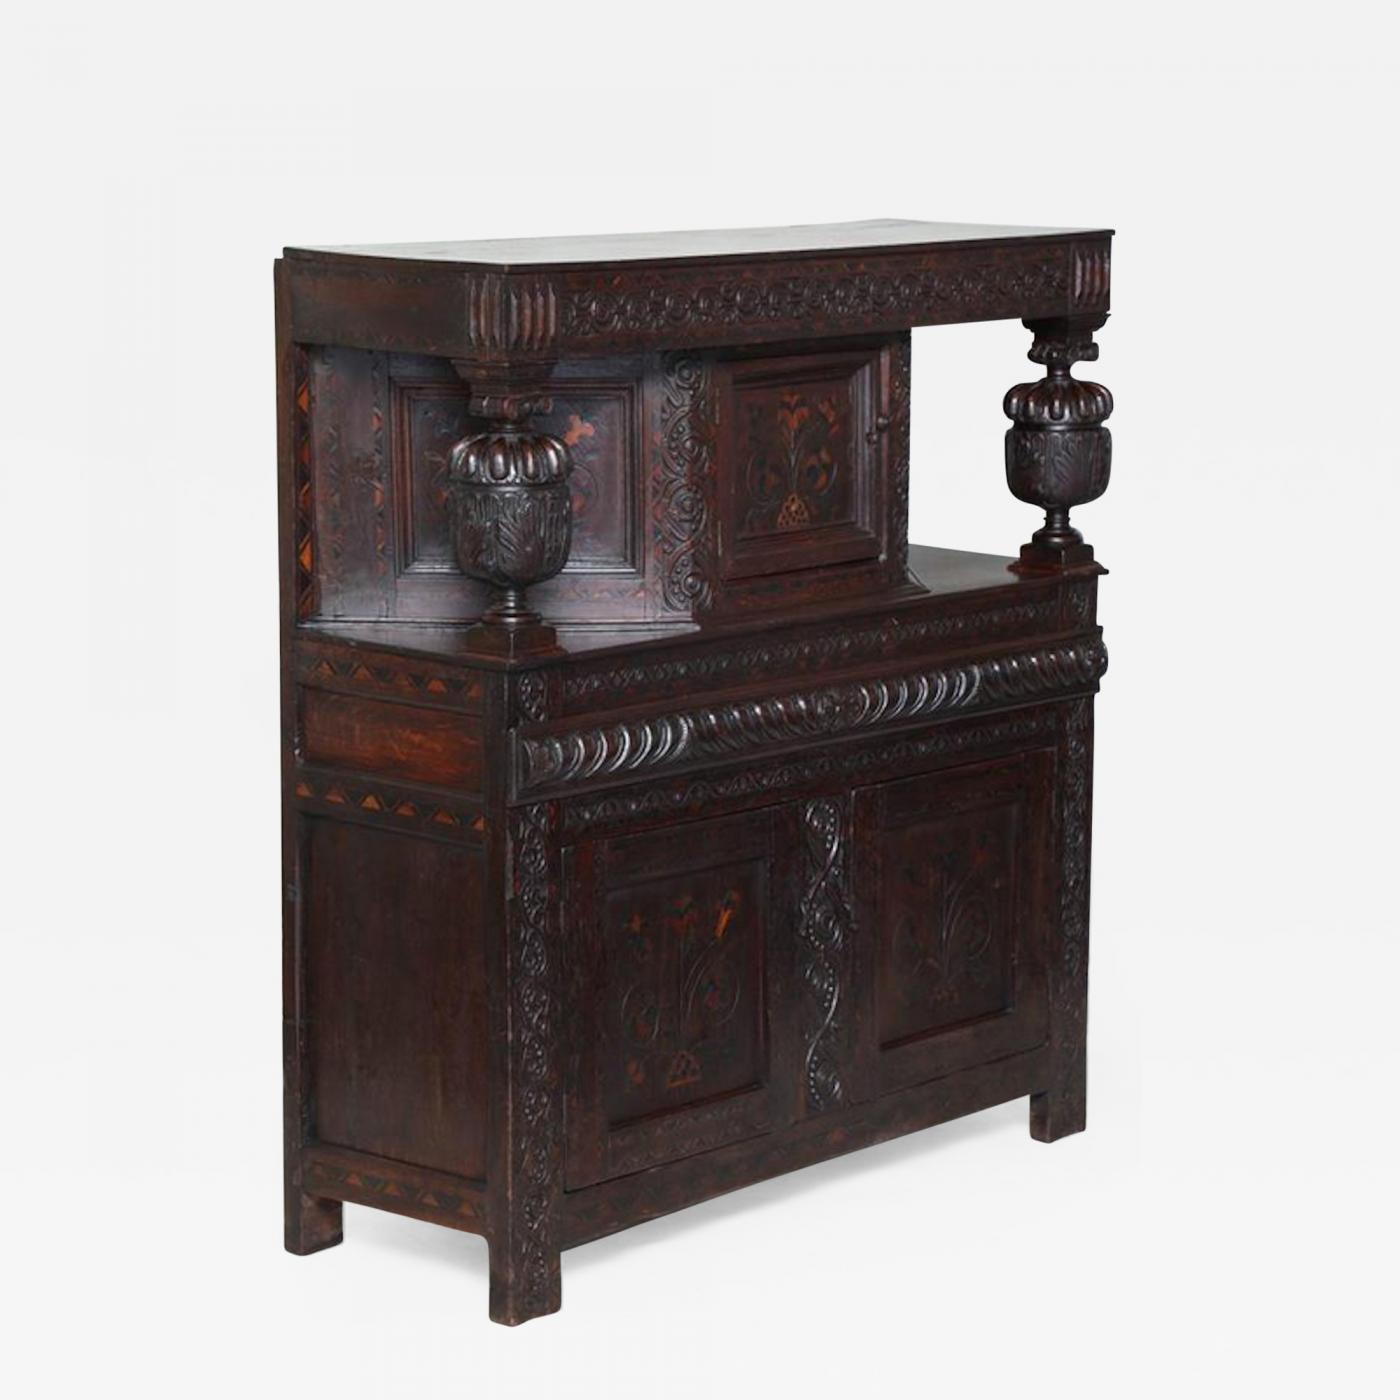 Listings / Furniture / Case Pieces & Storage / Cabinets · Elizabethan Court  Cupboard - Elizabethan Court Cupboard